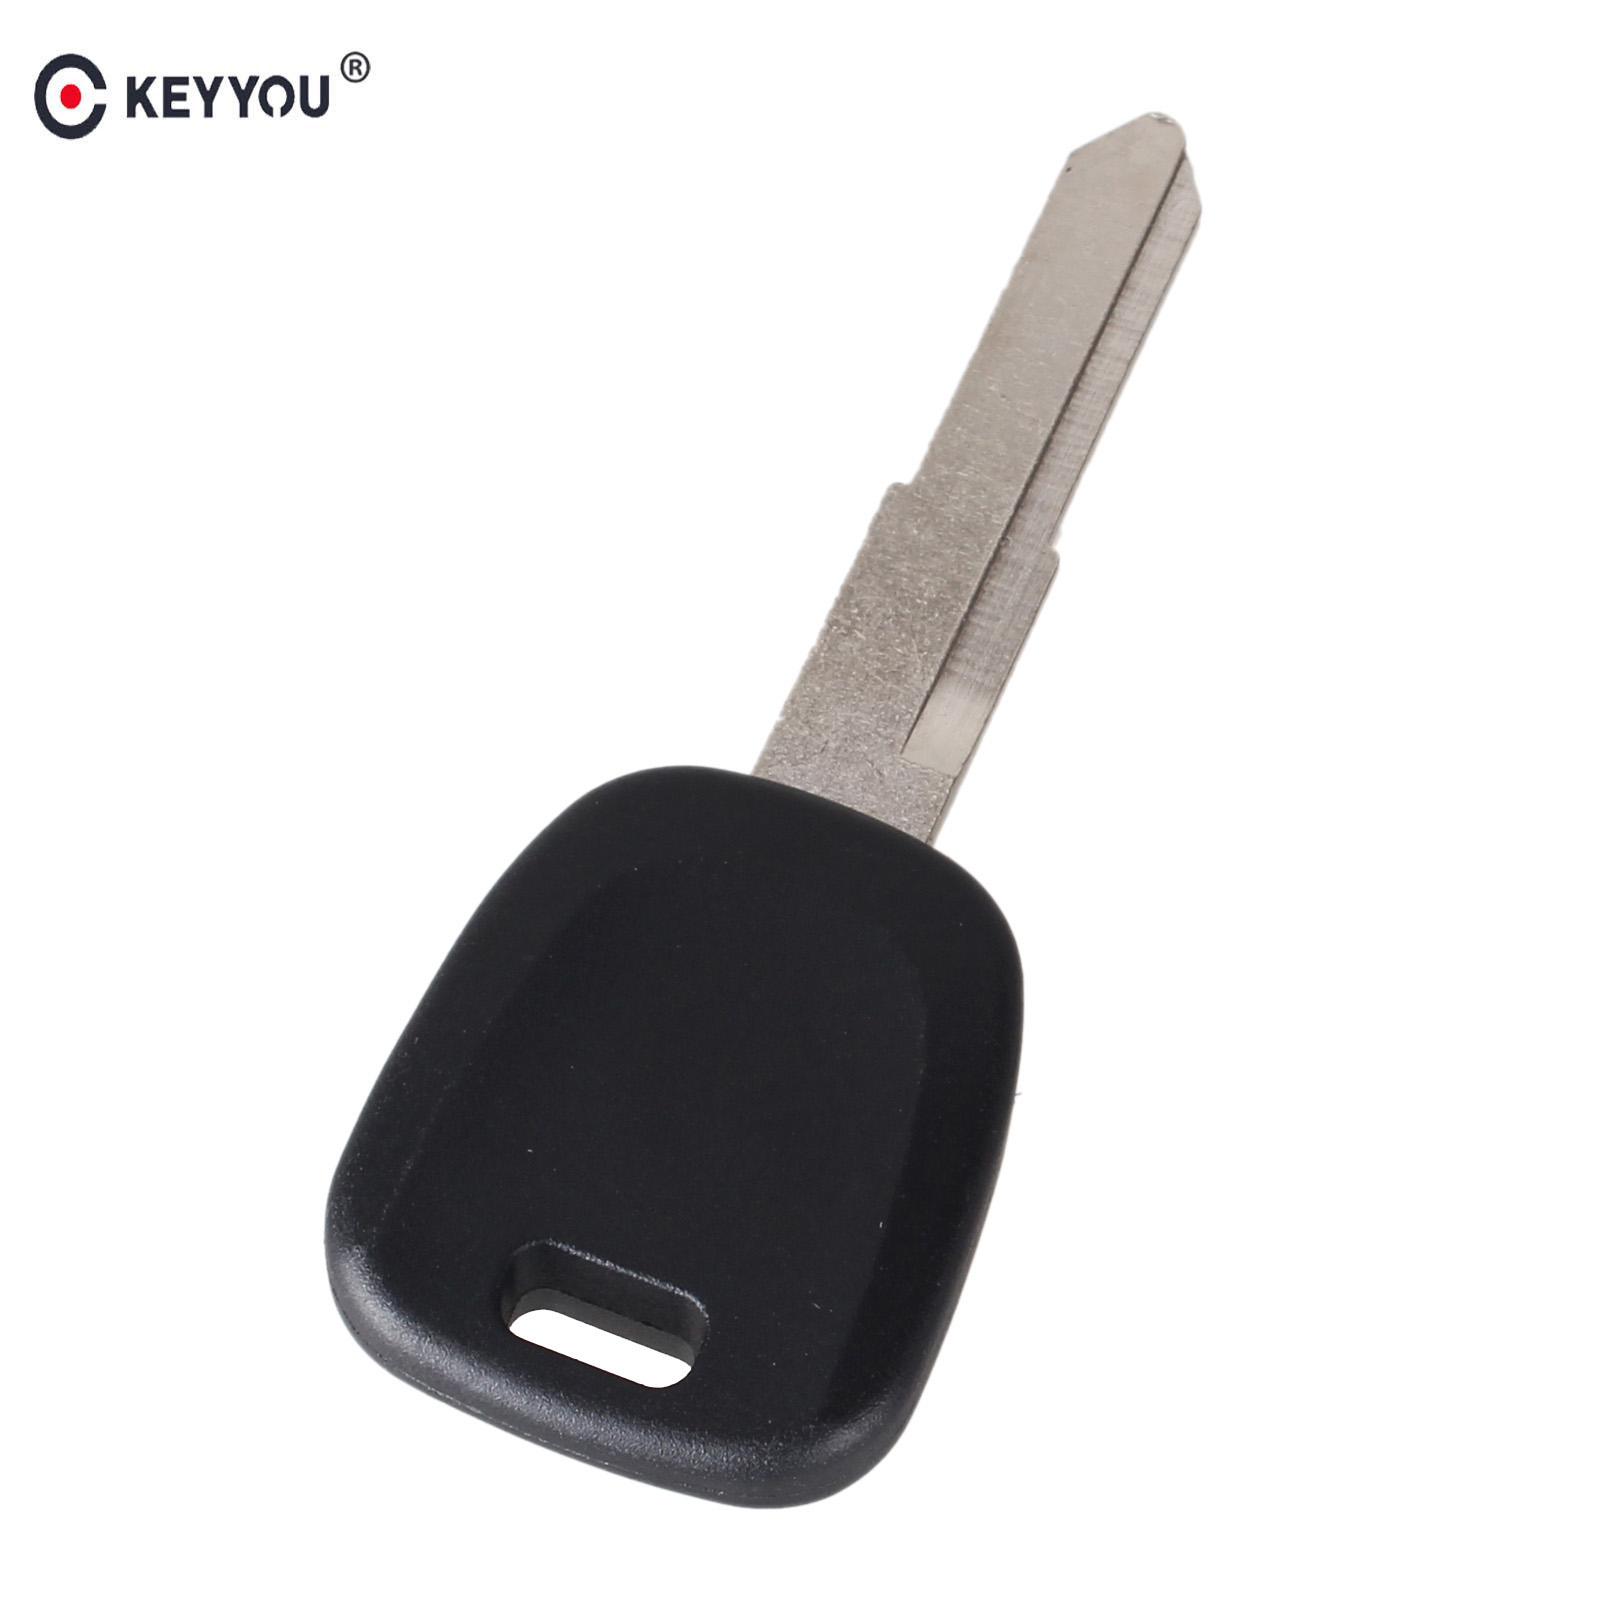 Keyyou Replacement Transponder Key Case Shell For Suzuki